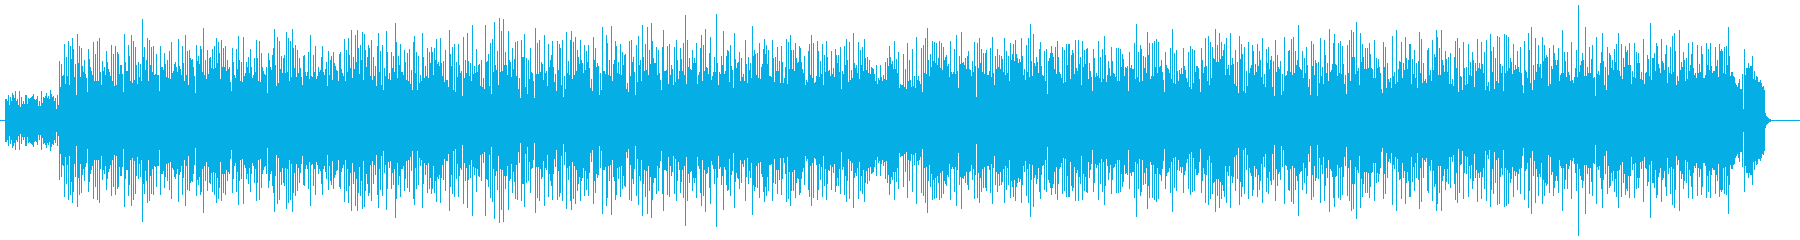 Up-tempo synthesizer song's reproduced waveform